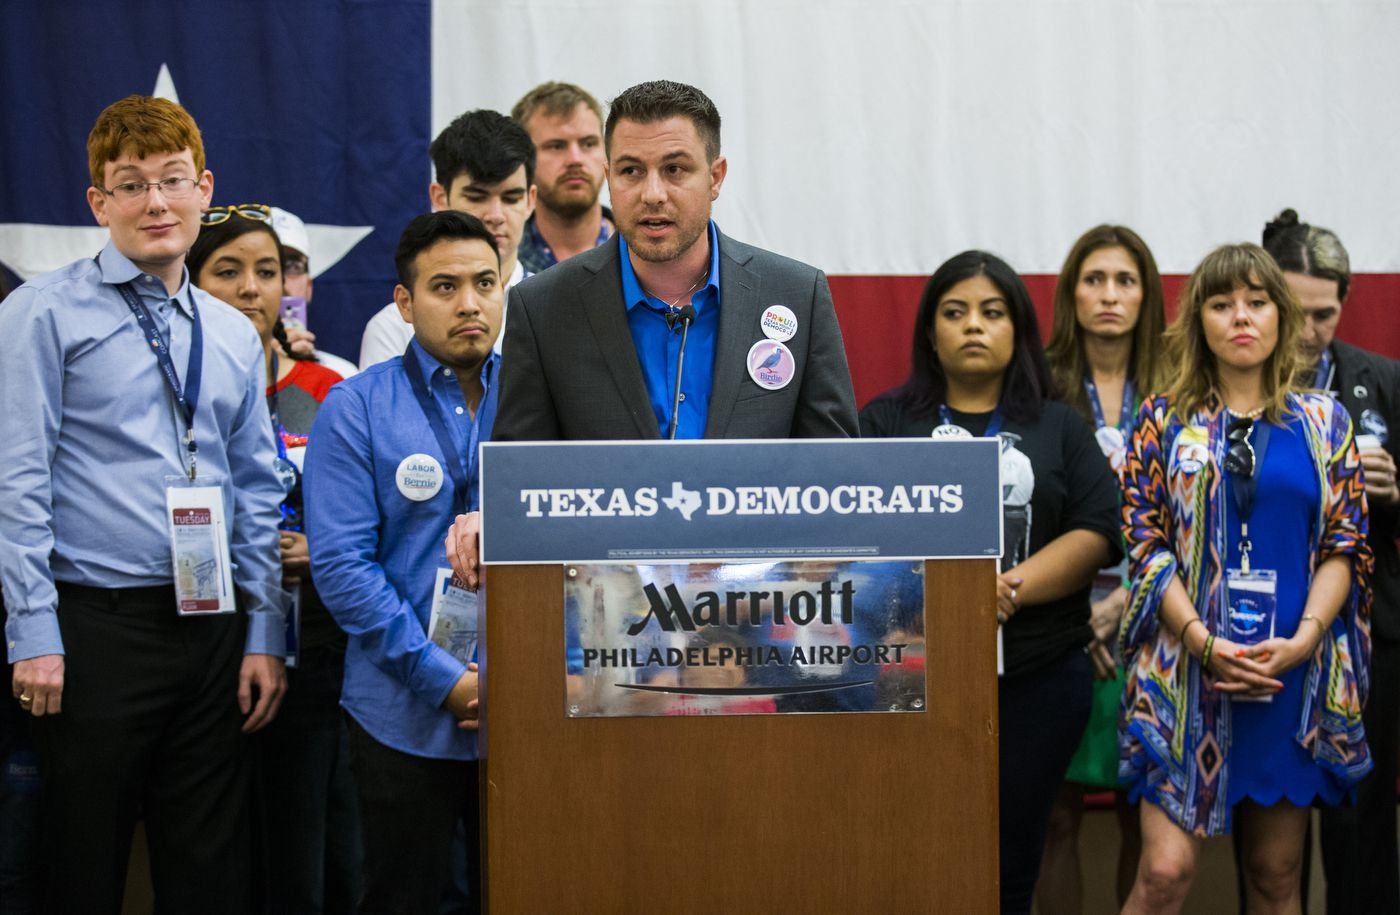 Russell Lytle, Bernie Sanders supporter from Denton county, speaks on behalf of Sanders supporters during the Texas delegation breakfast before day two of the Democratic National Convention on Tuesday, July 26, 2016 at the Philadelphia Airport Marriott in Philadelphia, Pennsylvania.